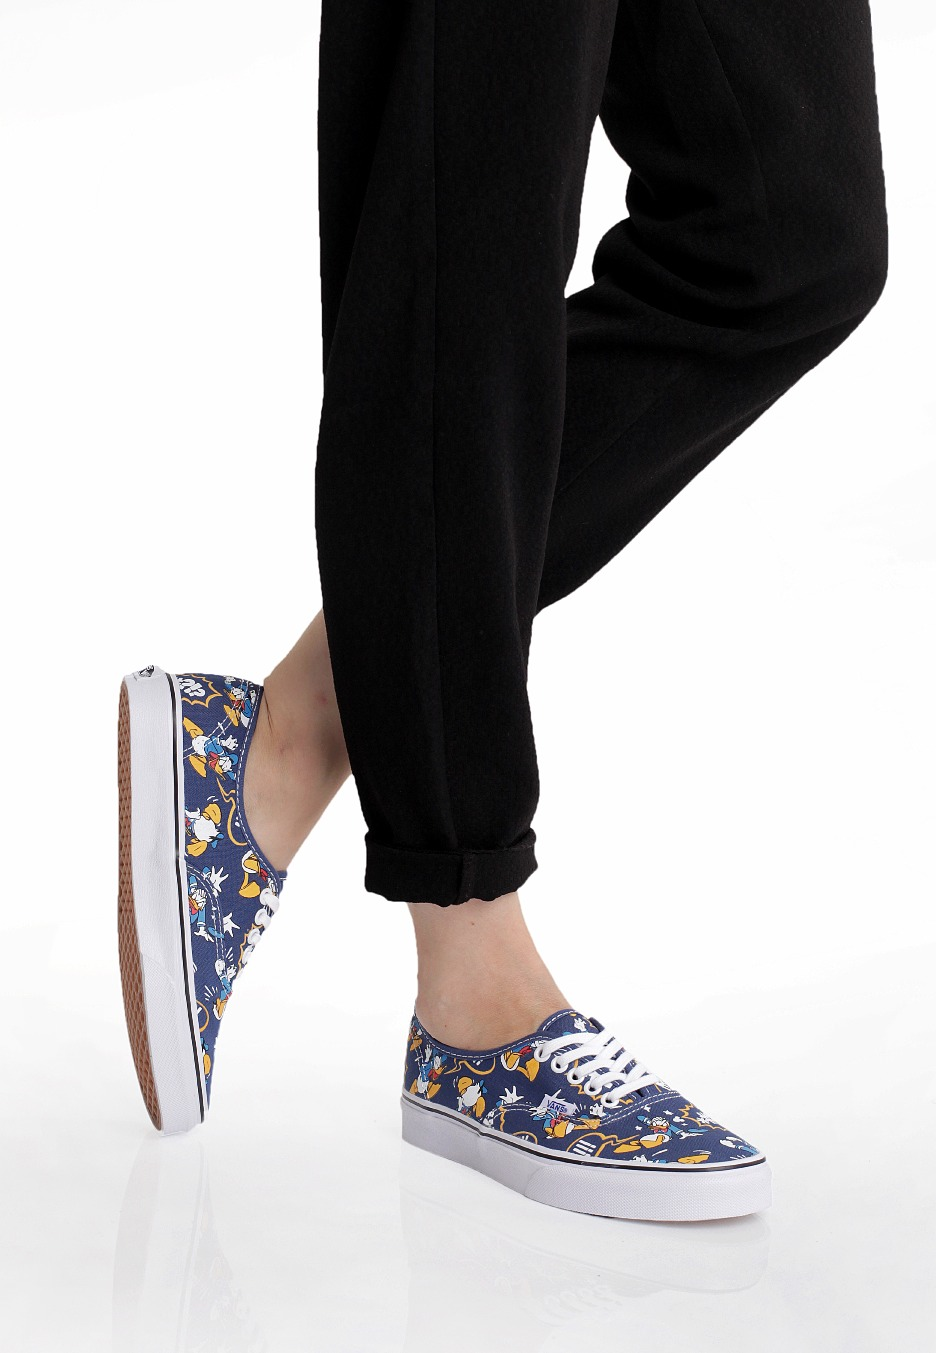 144a4f693a39 Vans - Authentic Donald Duck Navy - Girl Shoes - Impericon.com UK